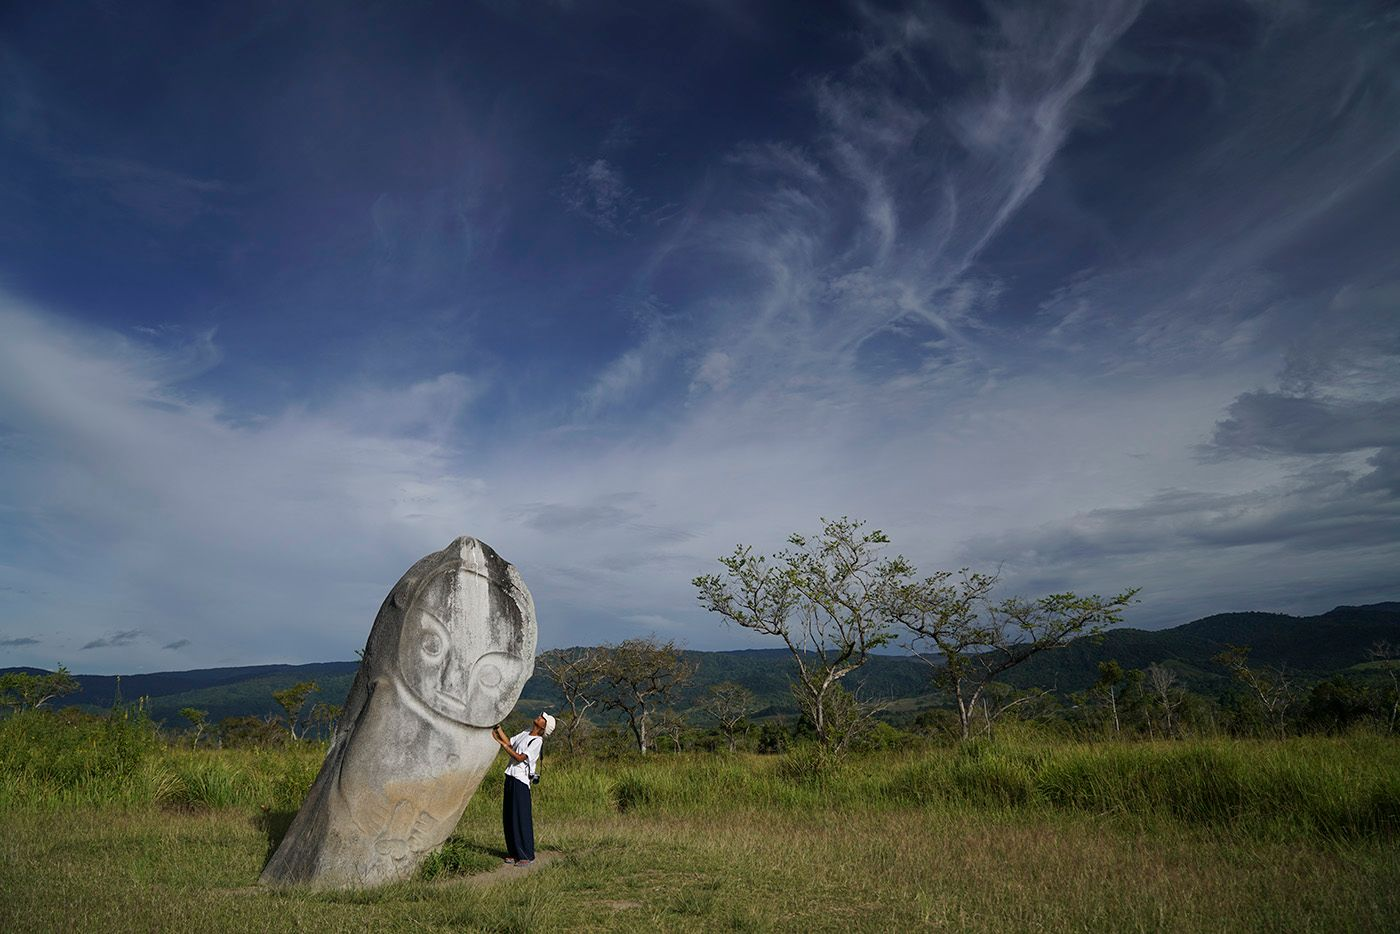 Lore Lindu National Park is located in Central Sulawesi Indonesia